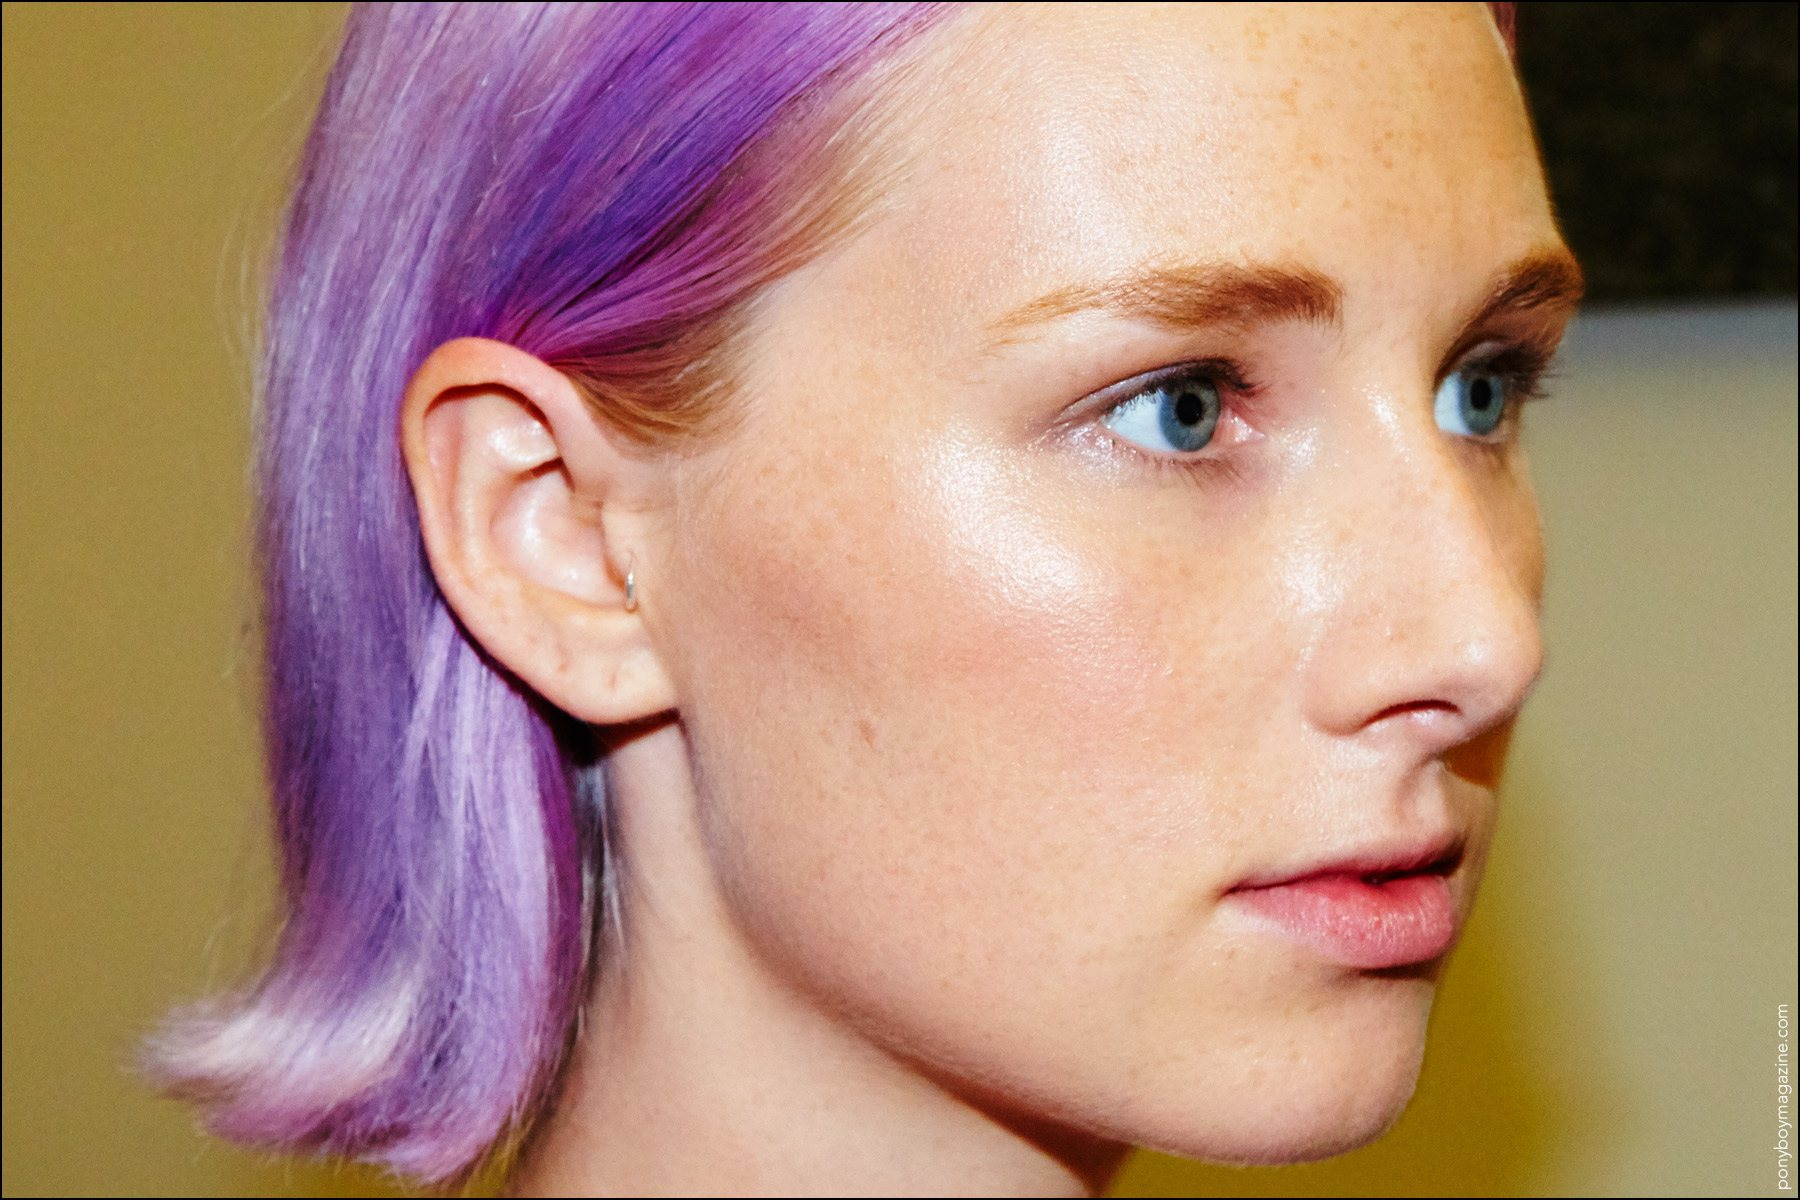 Lilac hair photographed on a young model, backstage at the threeASFOUR fashion show for Spring 2017. Photographed by Alexander Thompson for Ponyboy magazine in NY.